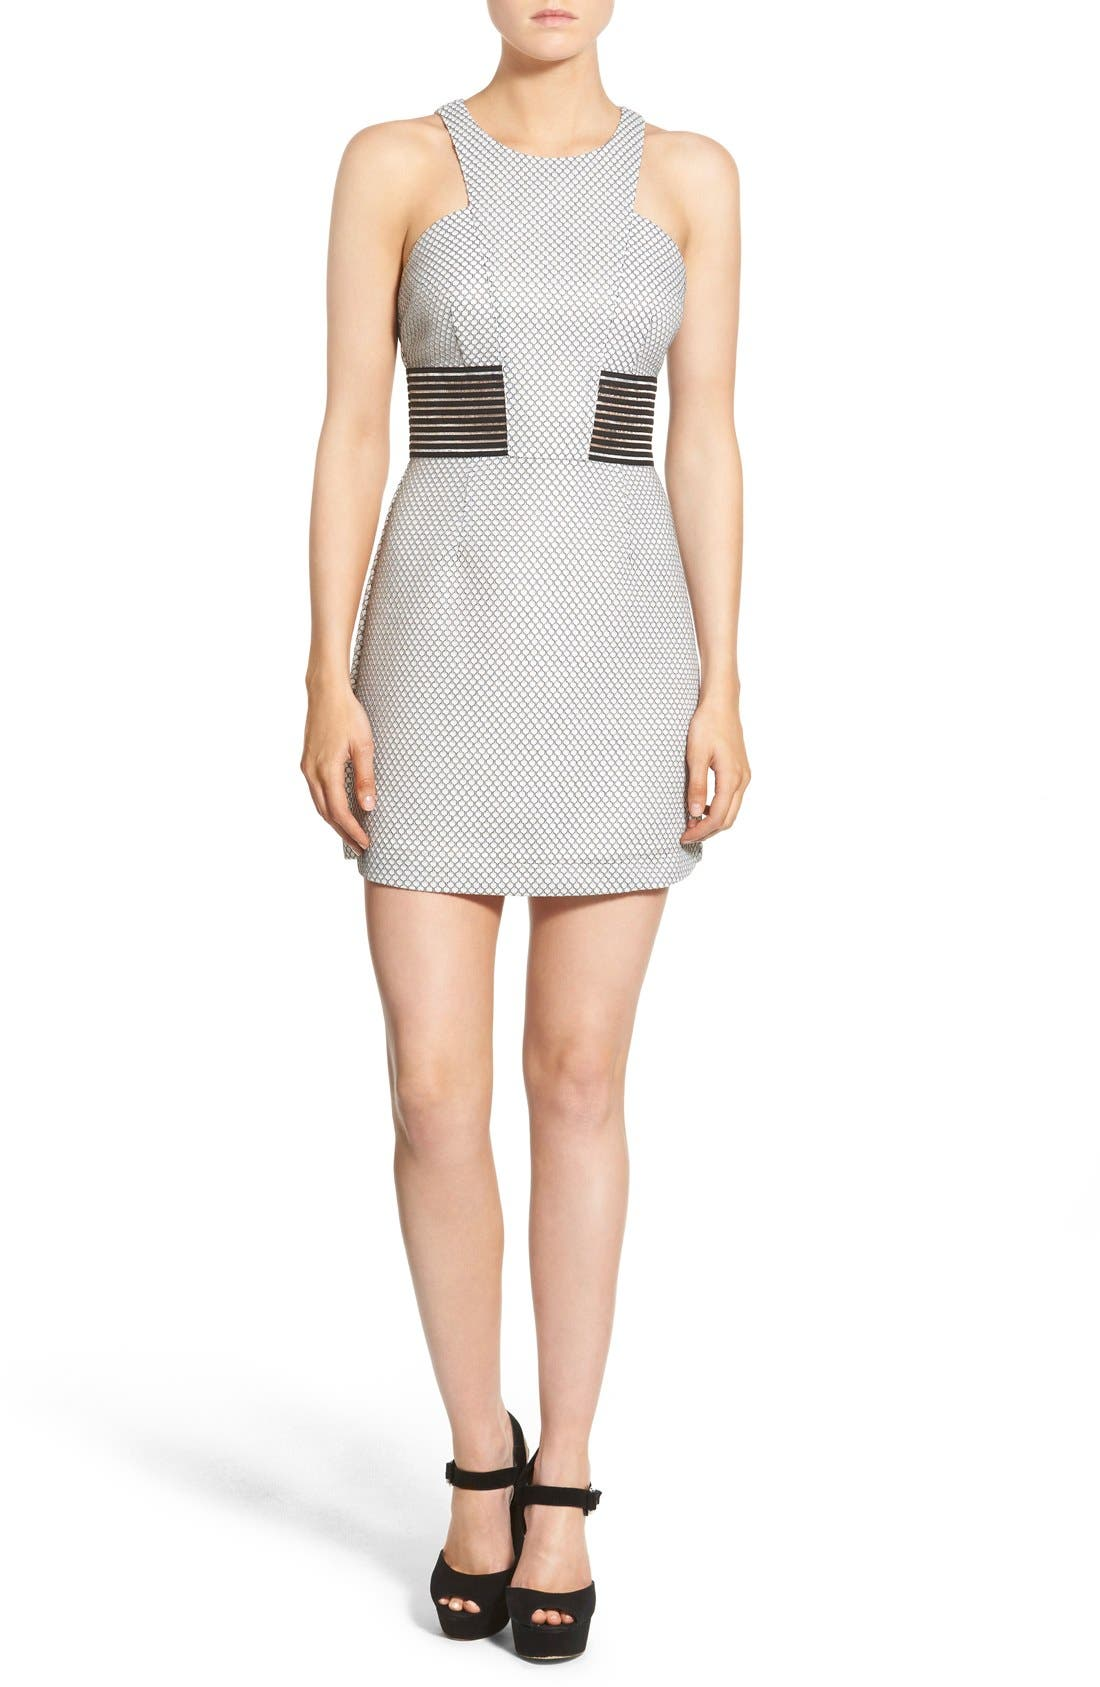 STOREE Mesh Inset Body-Con Dress, Main, color, 101